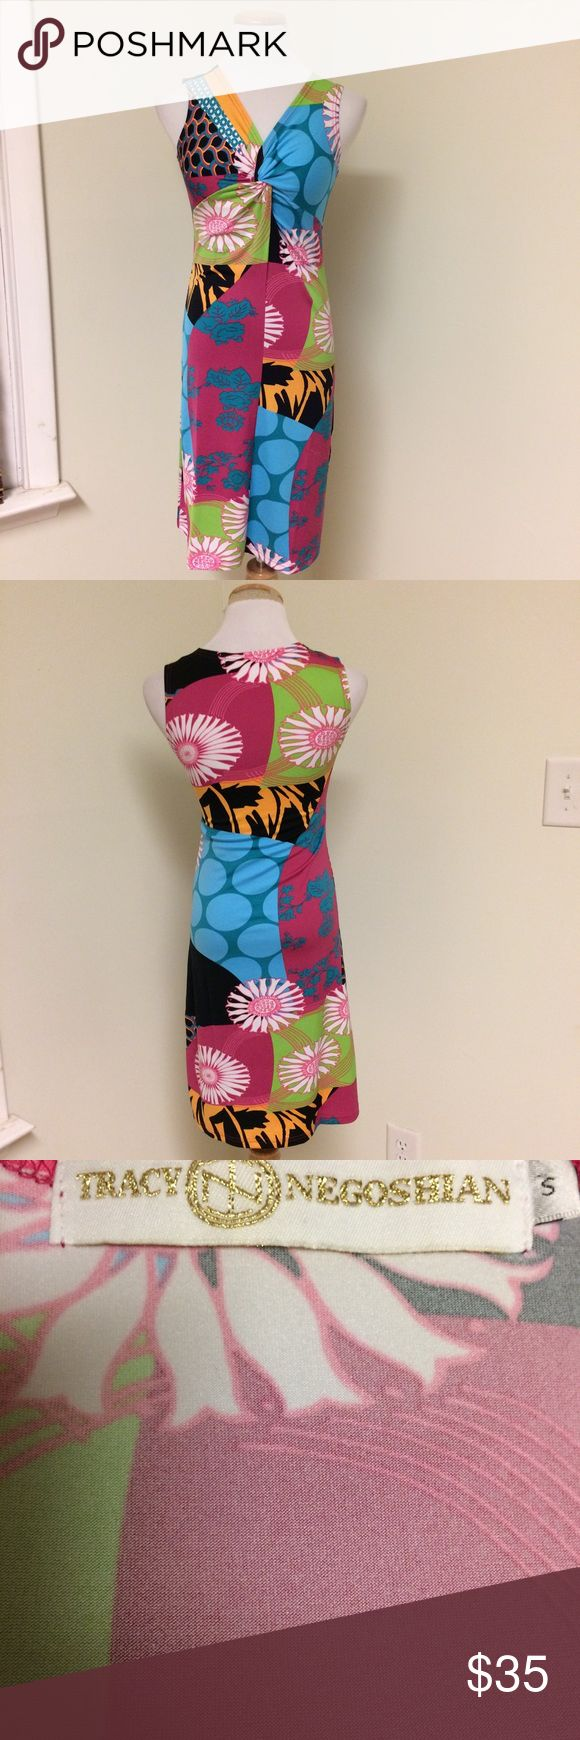 Just In! | Tracy Negoshian | Printed Shift Dress Fantastic printed shift dress from Tracy Negoshian. Designer has a very similar style to Lily Pulitzer. The dress is colorful, stretchy, and has a knotted bodice. Excellent condition. Tracy Negoshian Dresses